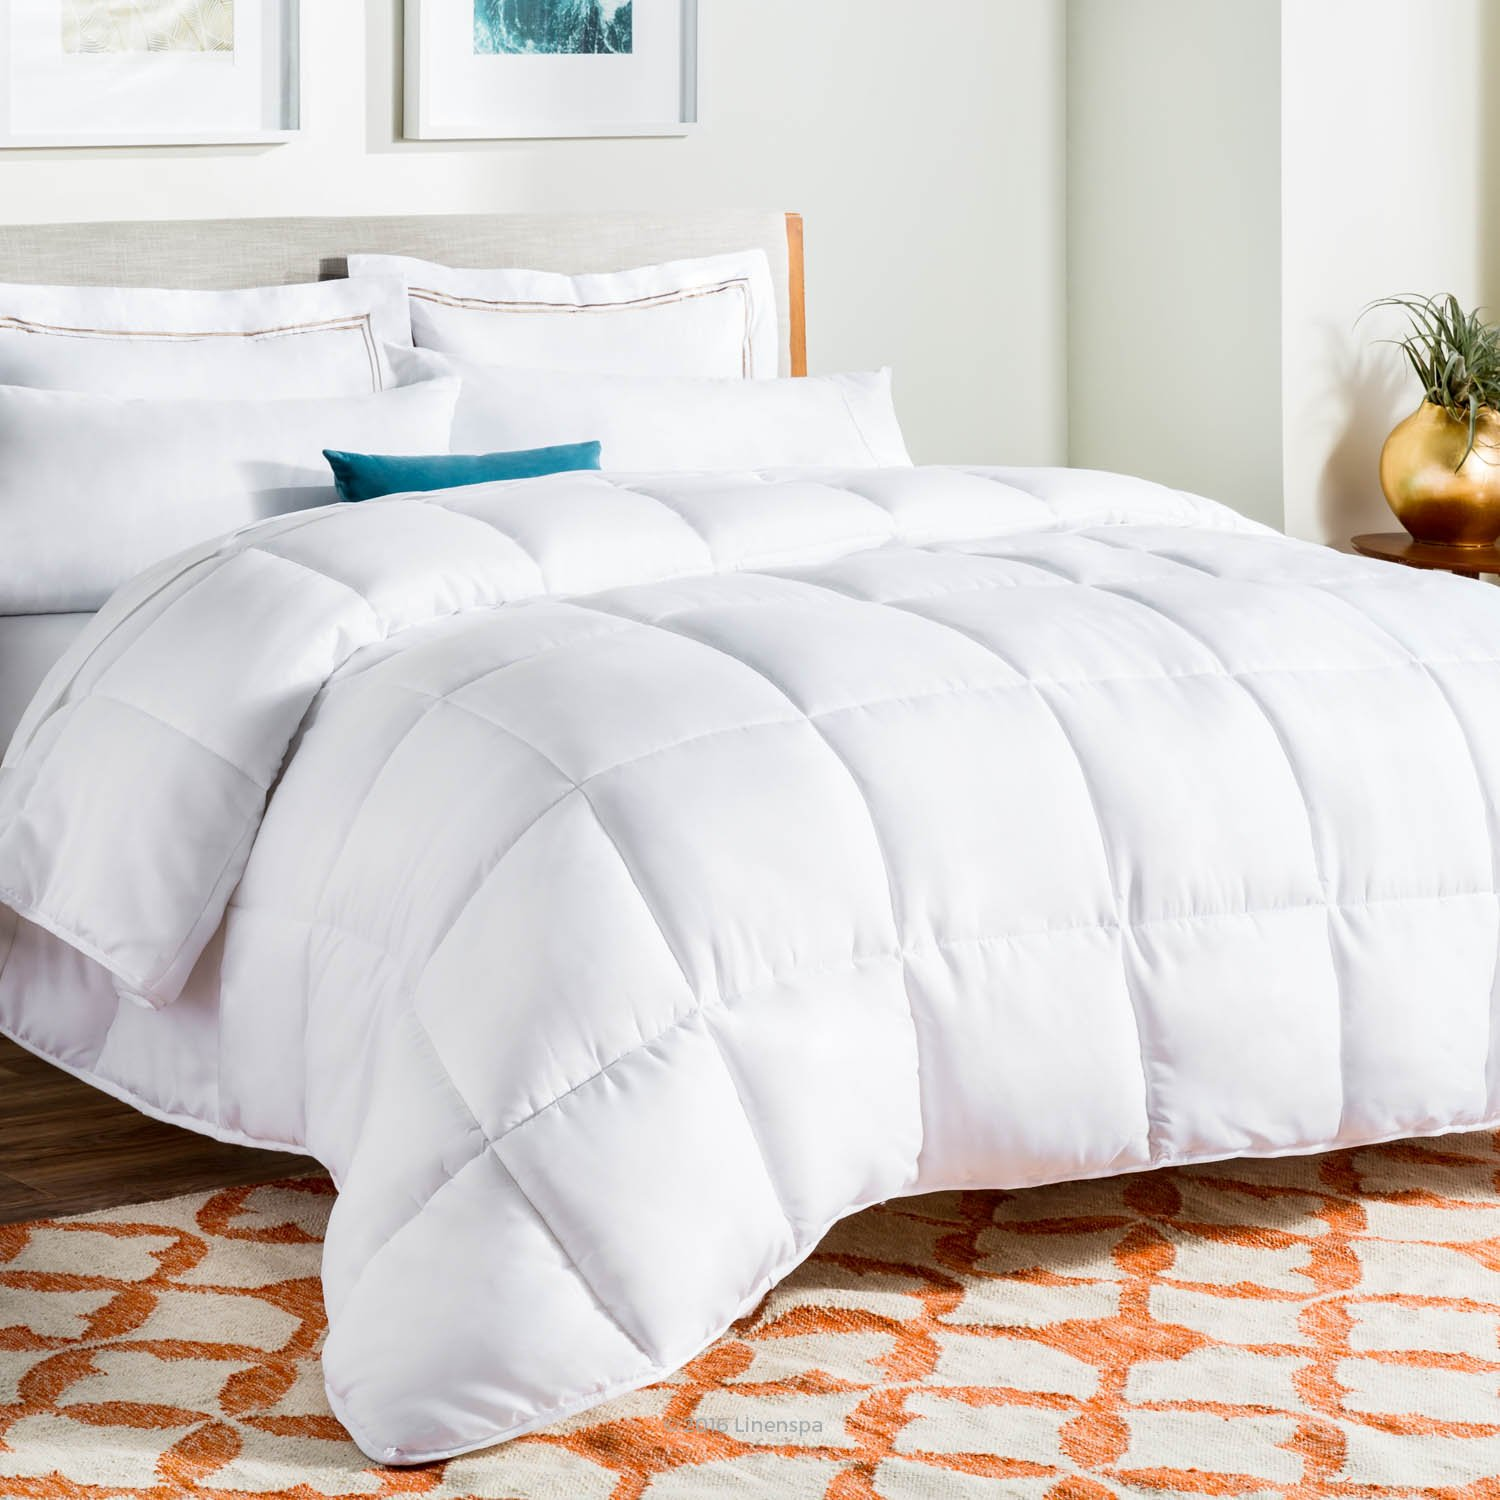 Linenspa All-Season Down Alternative Quilted Comforter - Hypoallergenic - Plush Microfiber Fill - Machine Washable - Duvet Insert or Stand-Alone Comforter